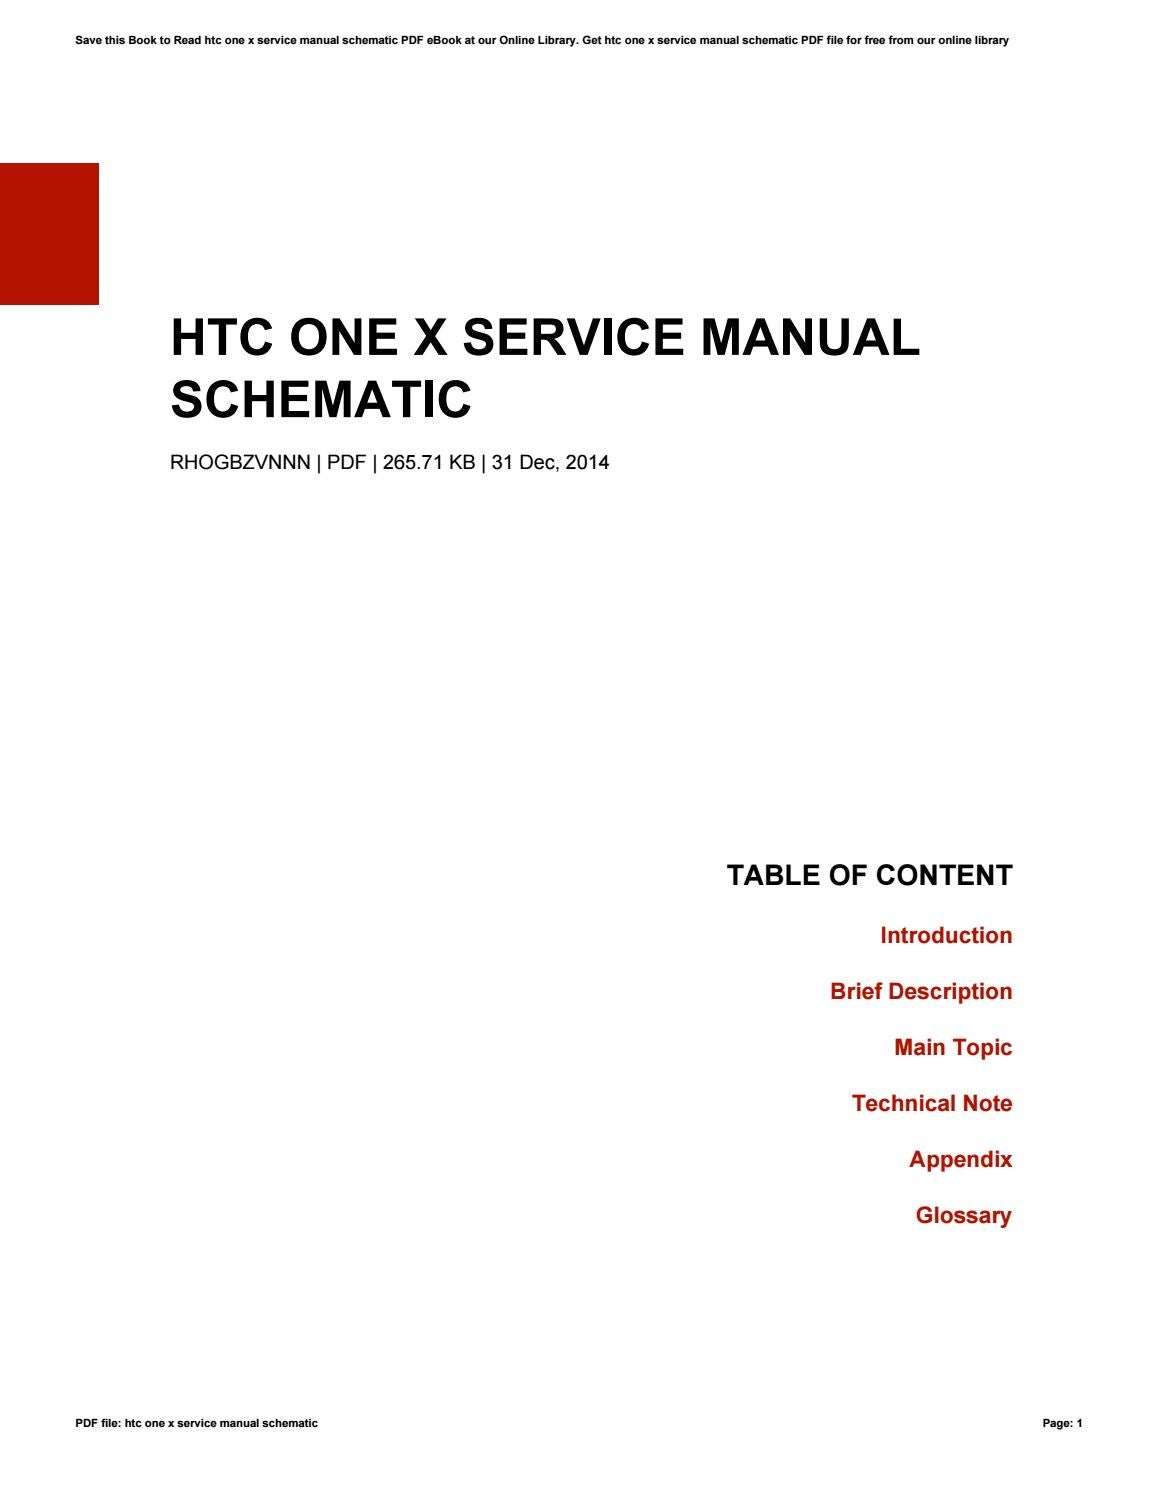 hight resolution of htc one x service manual schematic by uacro18 issuu